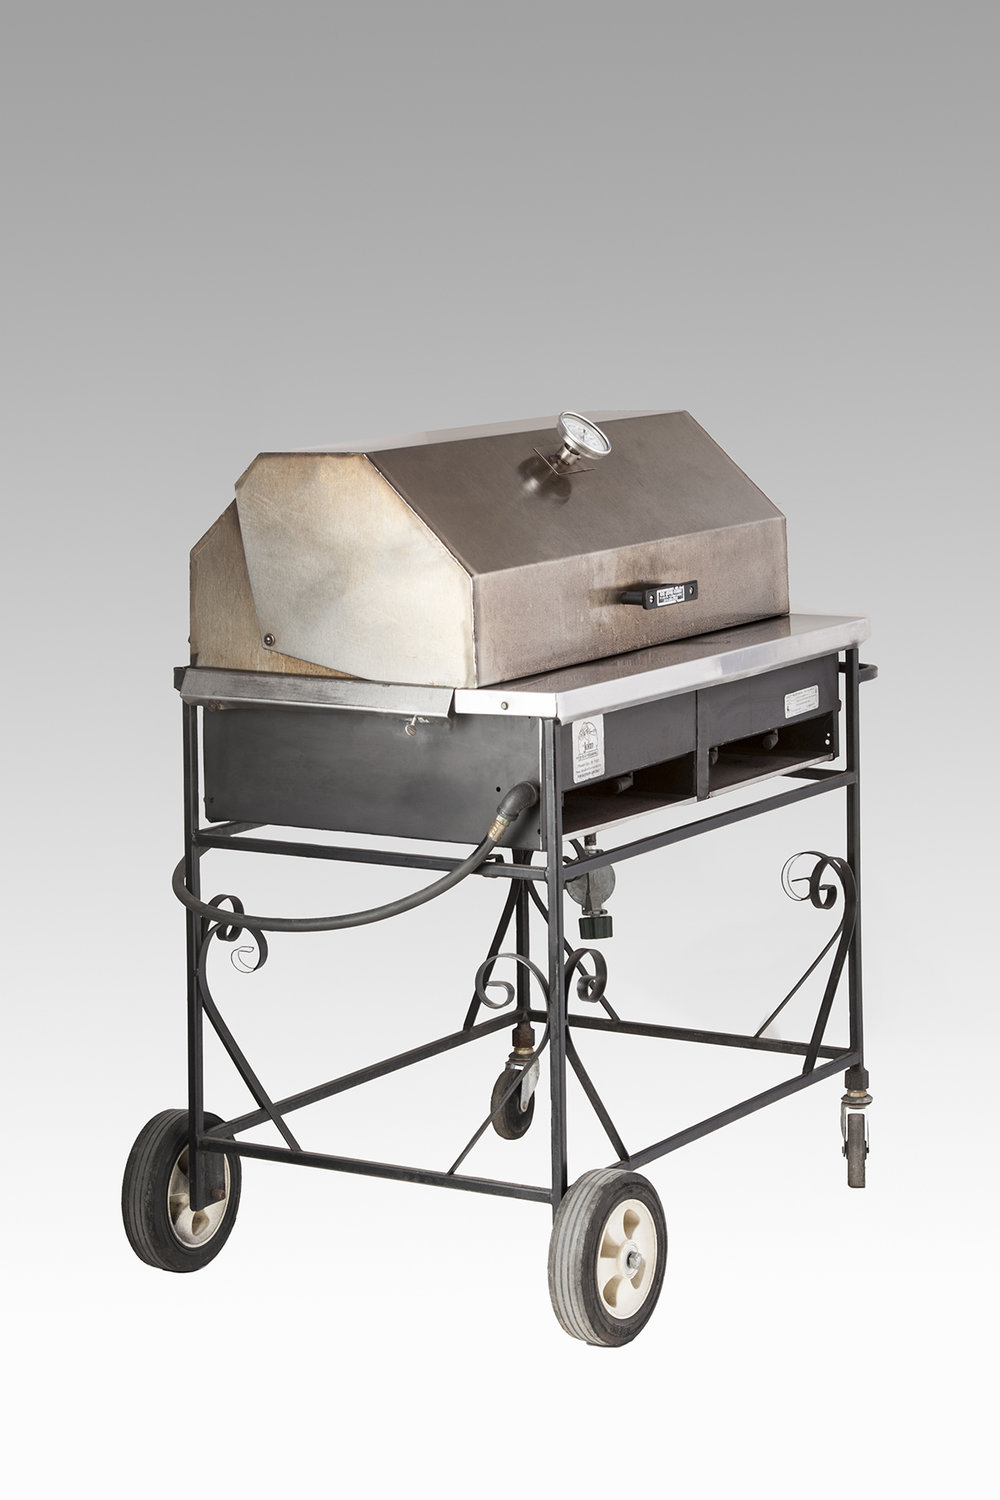 2'x3' Lava Rock Propane Grill with Cover $100.00